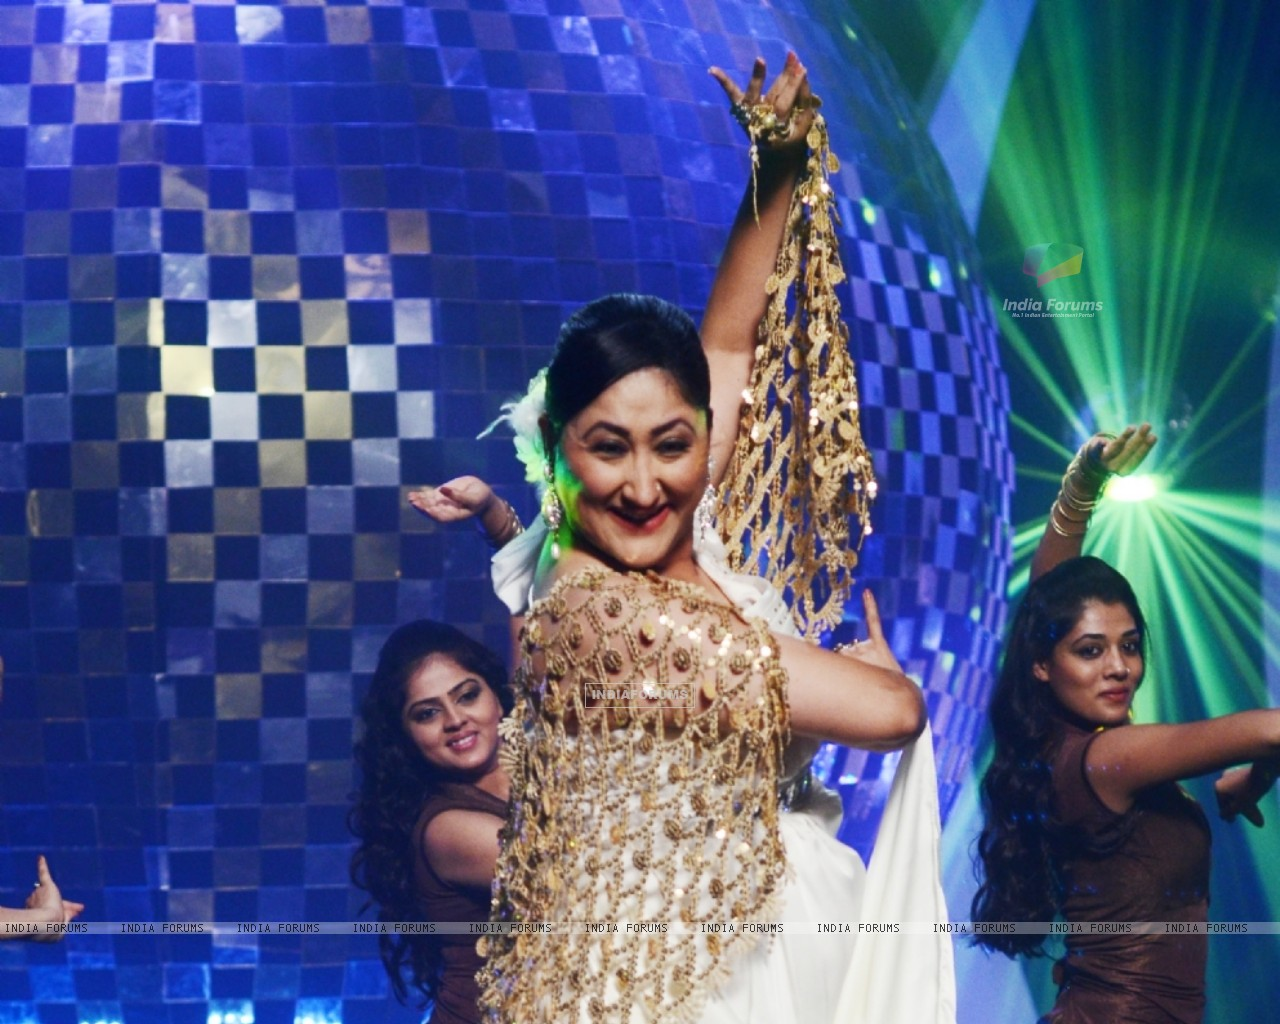 Jayati Bhatia at Jhalak Dikhhla Jaa 5 - Dancing with the stars (200680) size:1280x1024